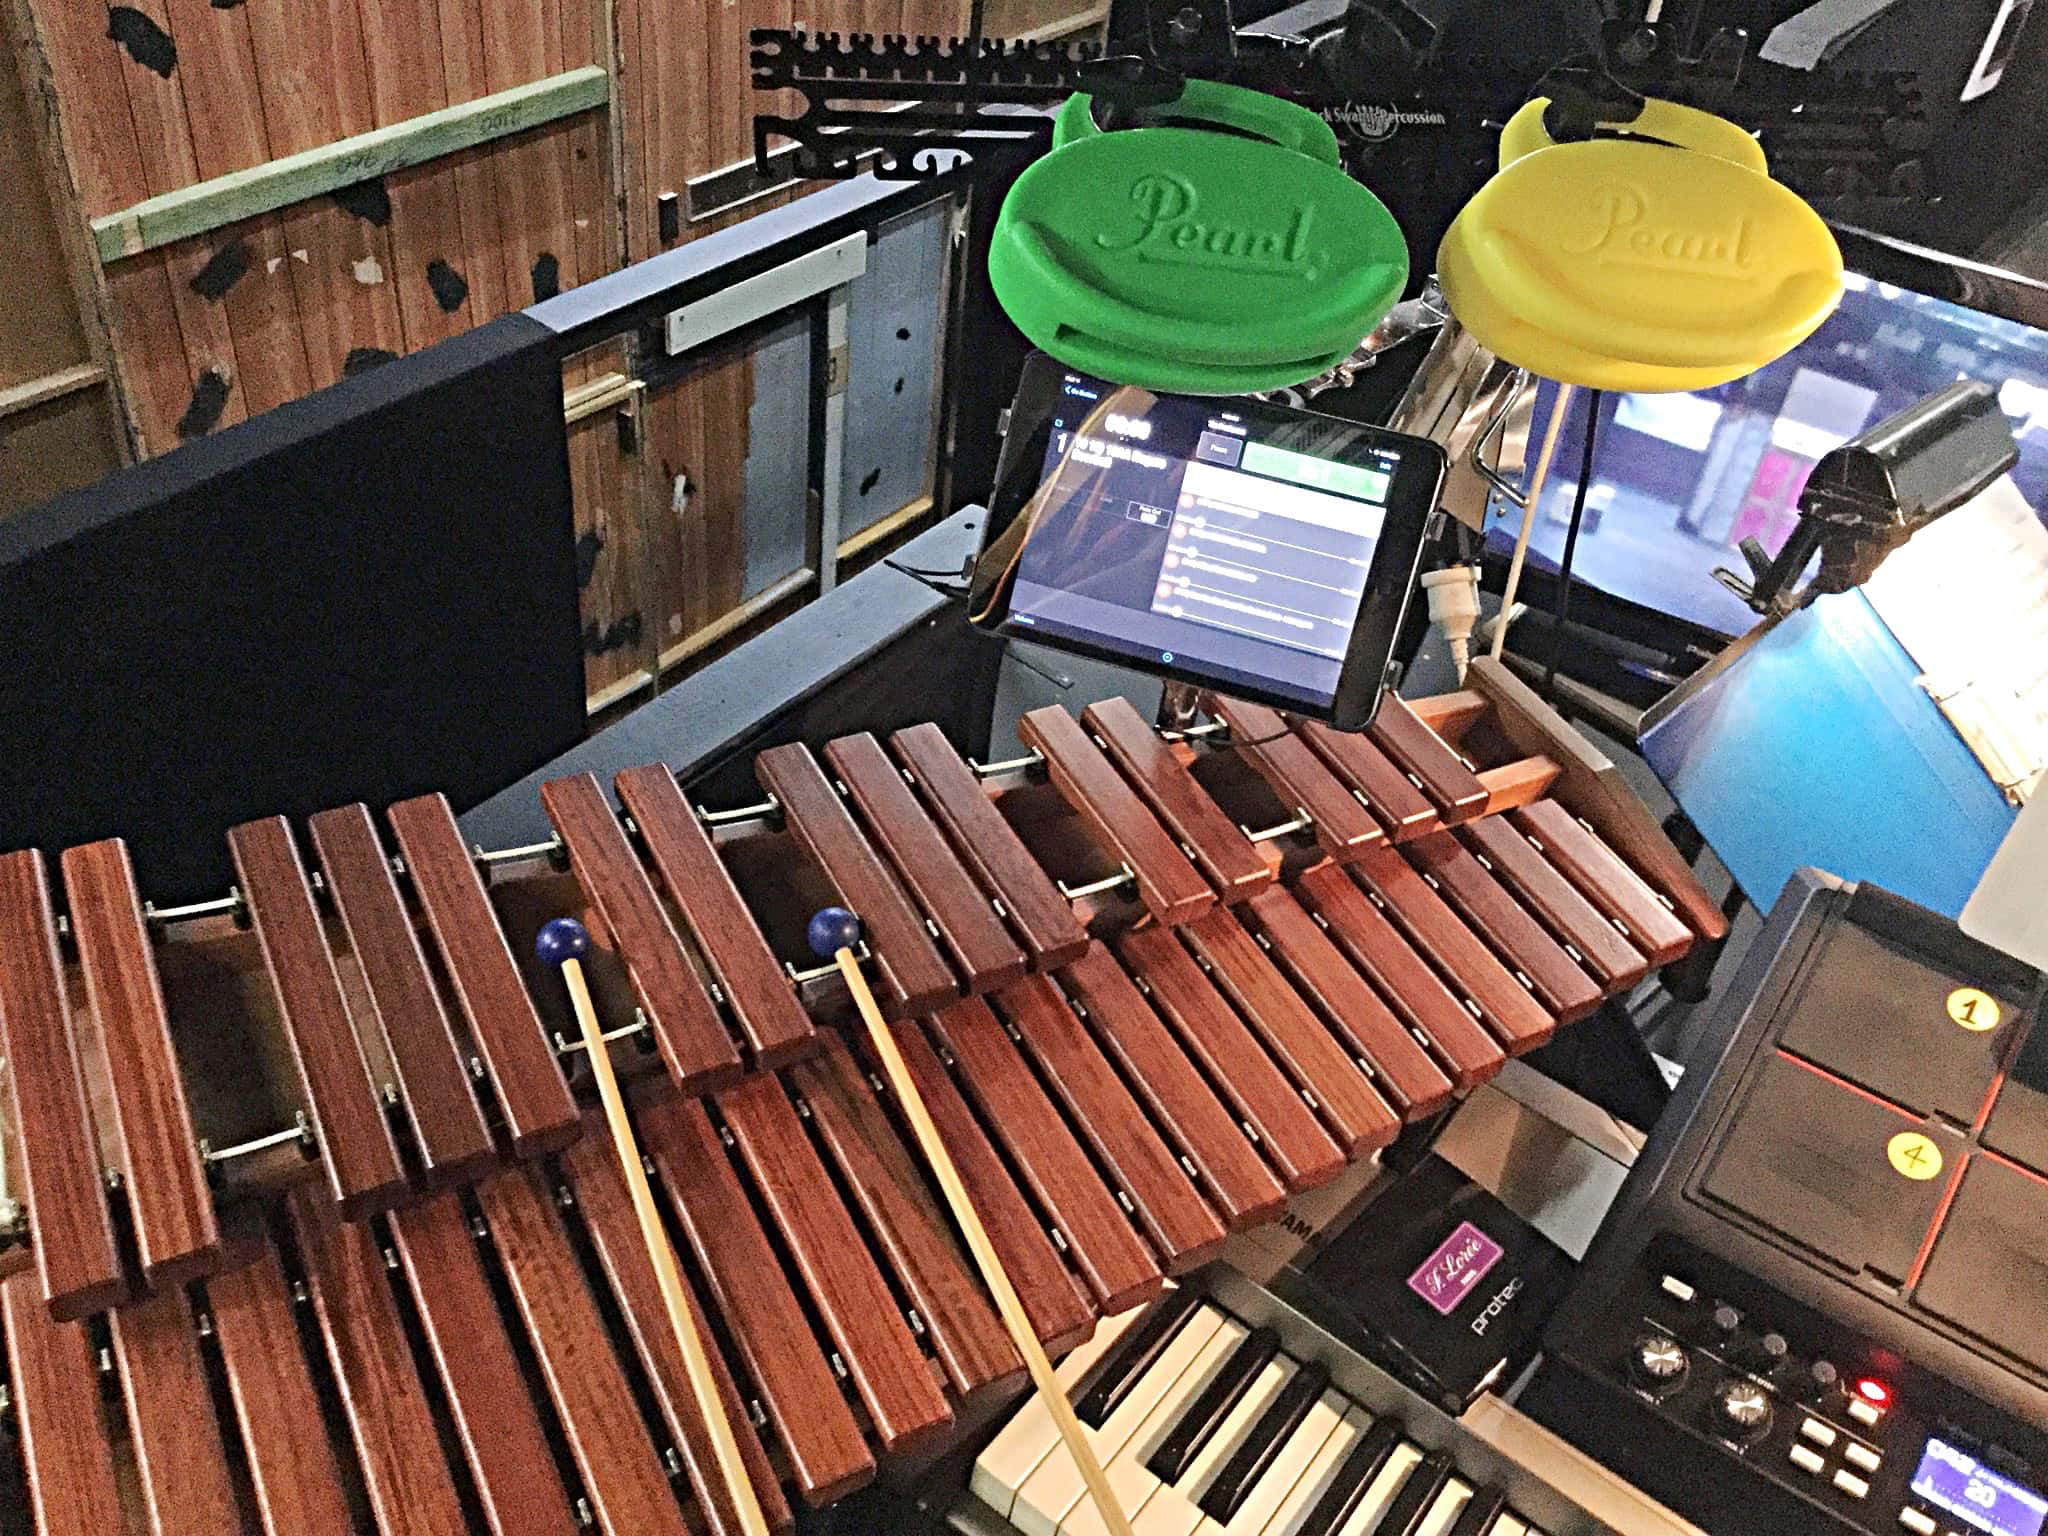 Lindsay Kaul's percussion setup for The Producers at The Players Theater in Port Macquarie in New South Wales, Australia.